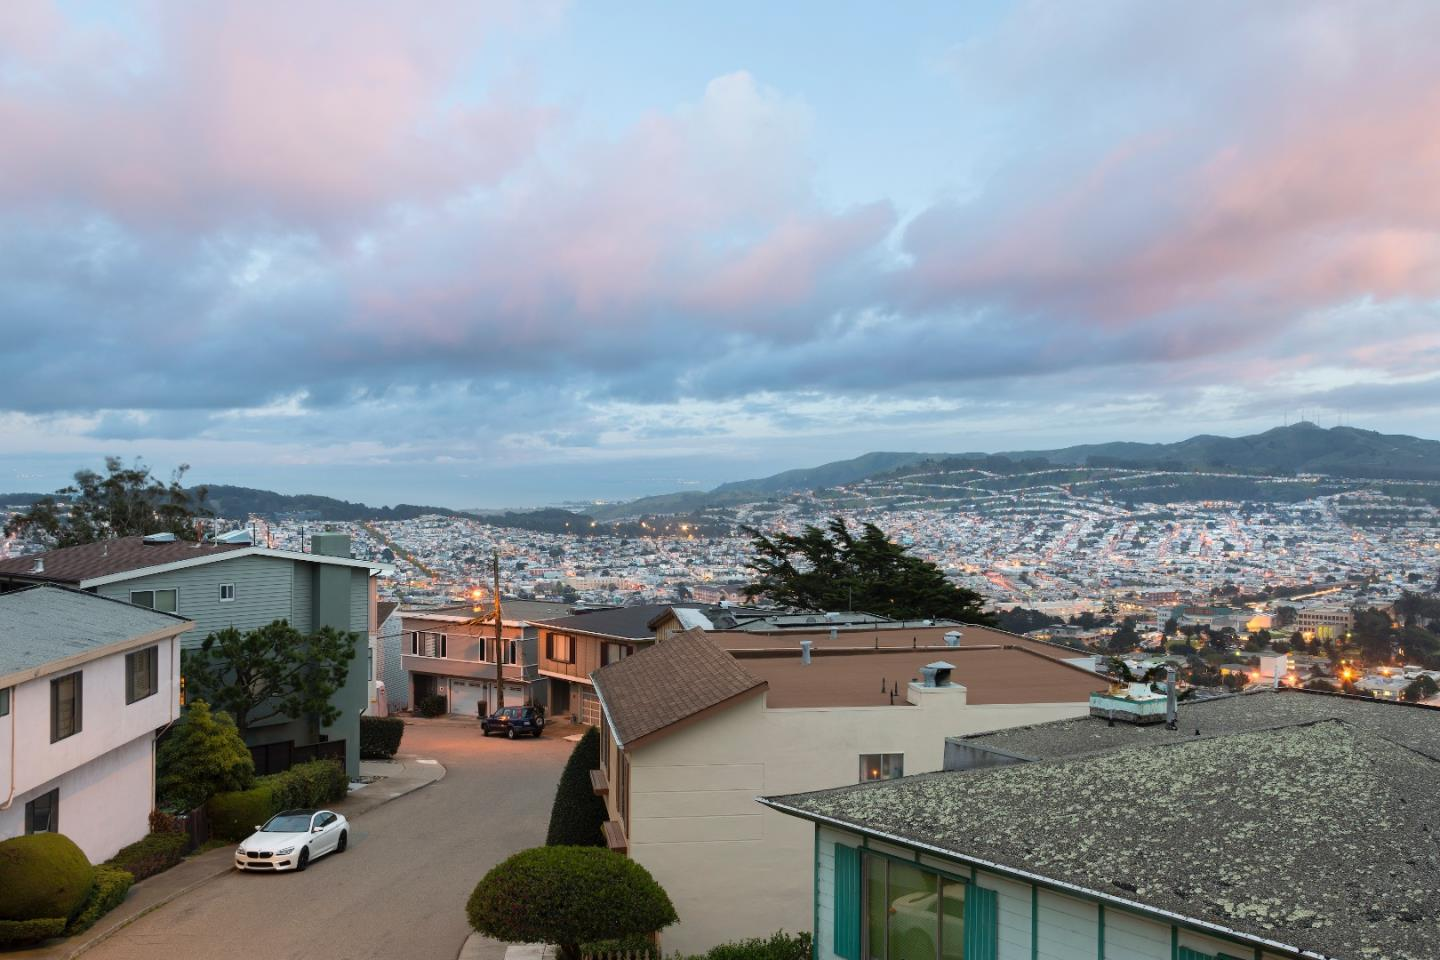 225 Cresta Vista San Francisco, CA 94127 - MLS #: ML81700361